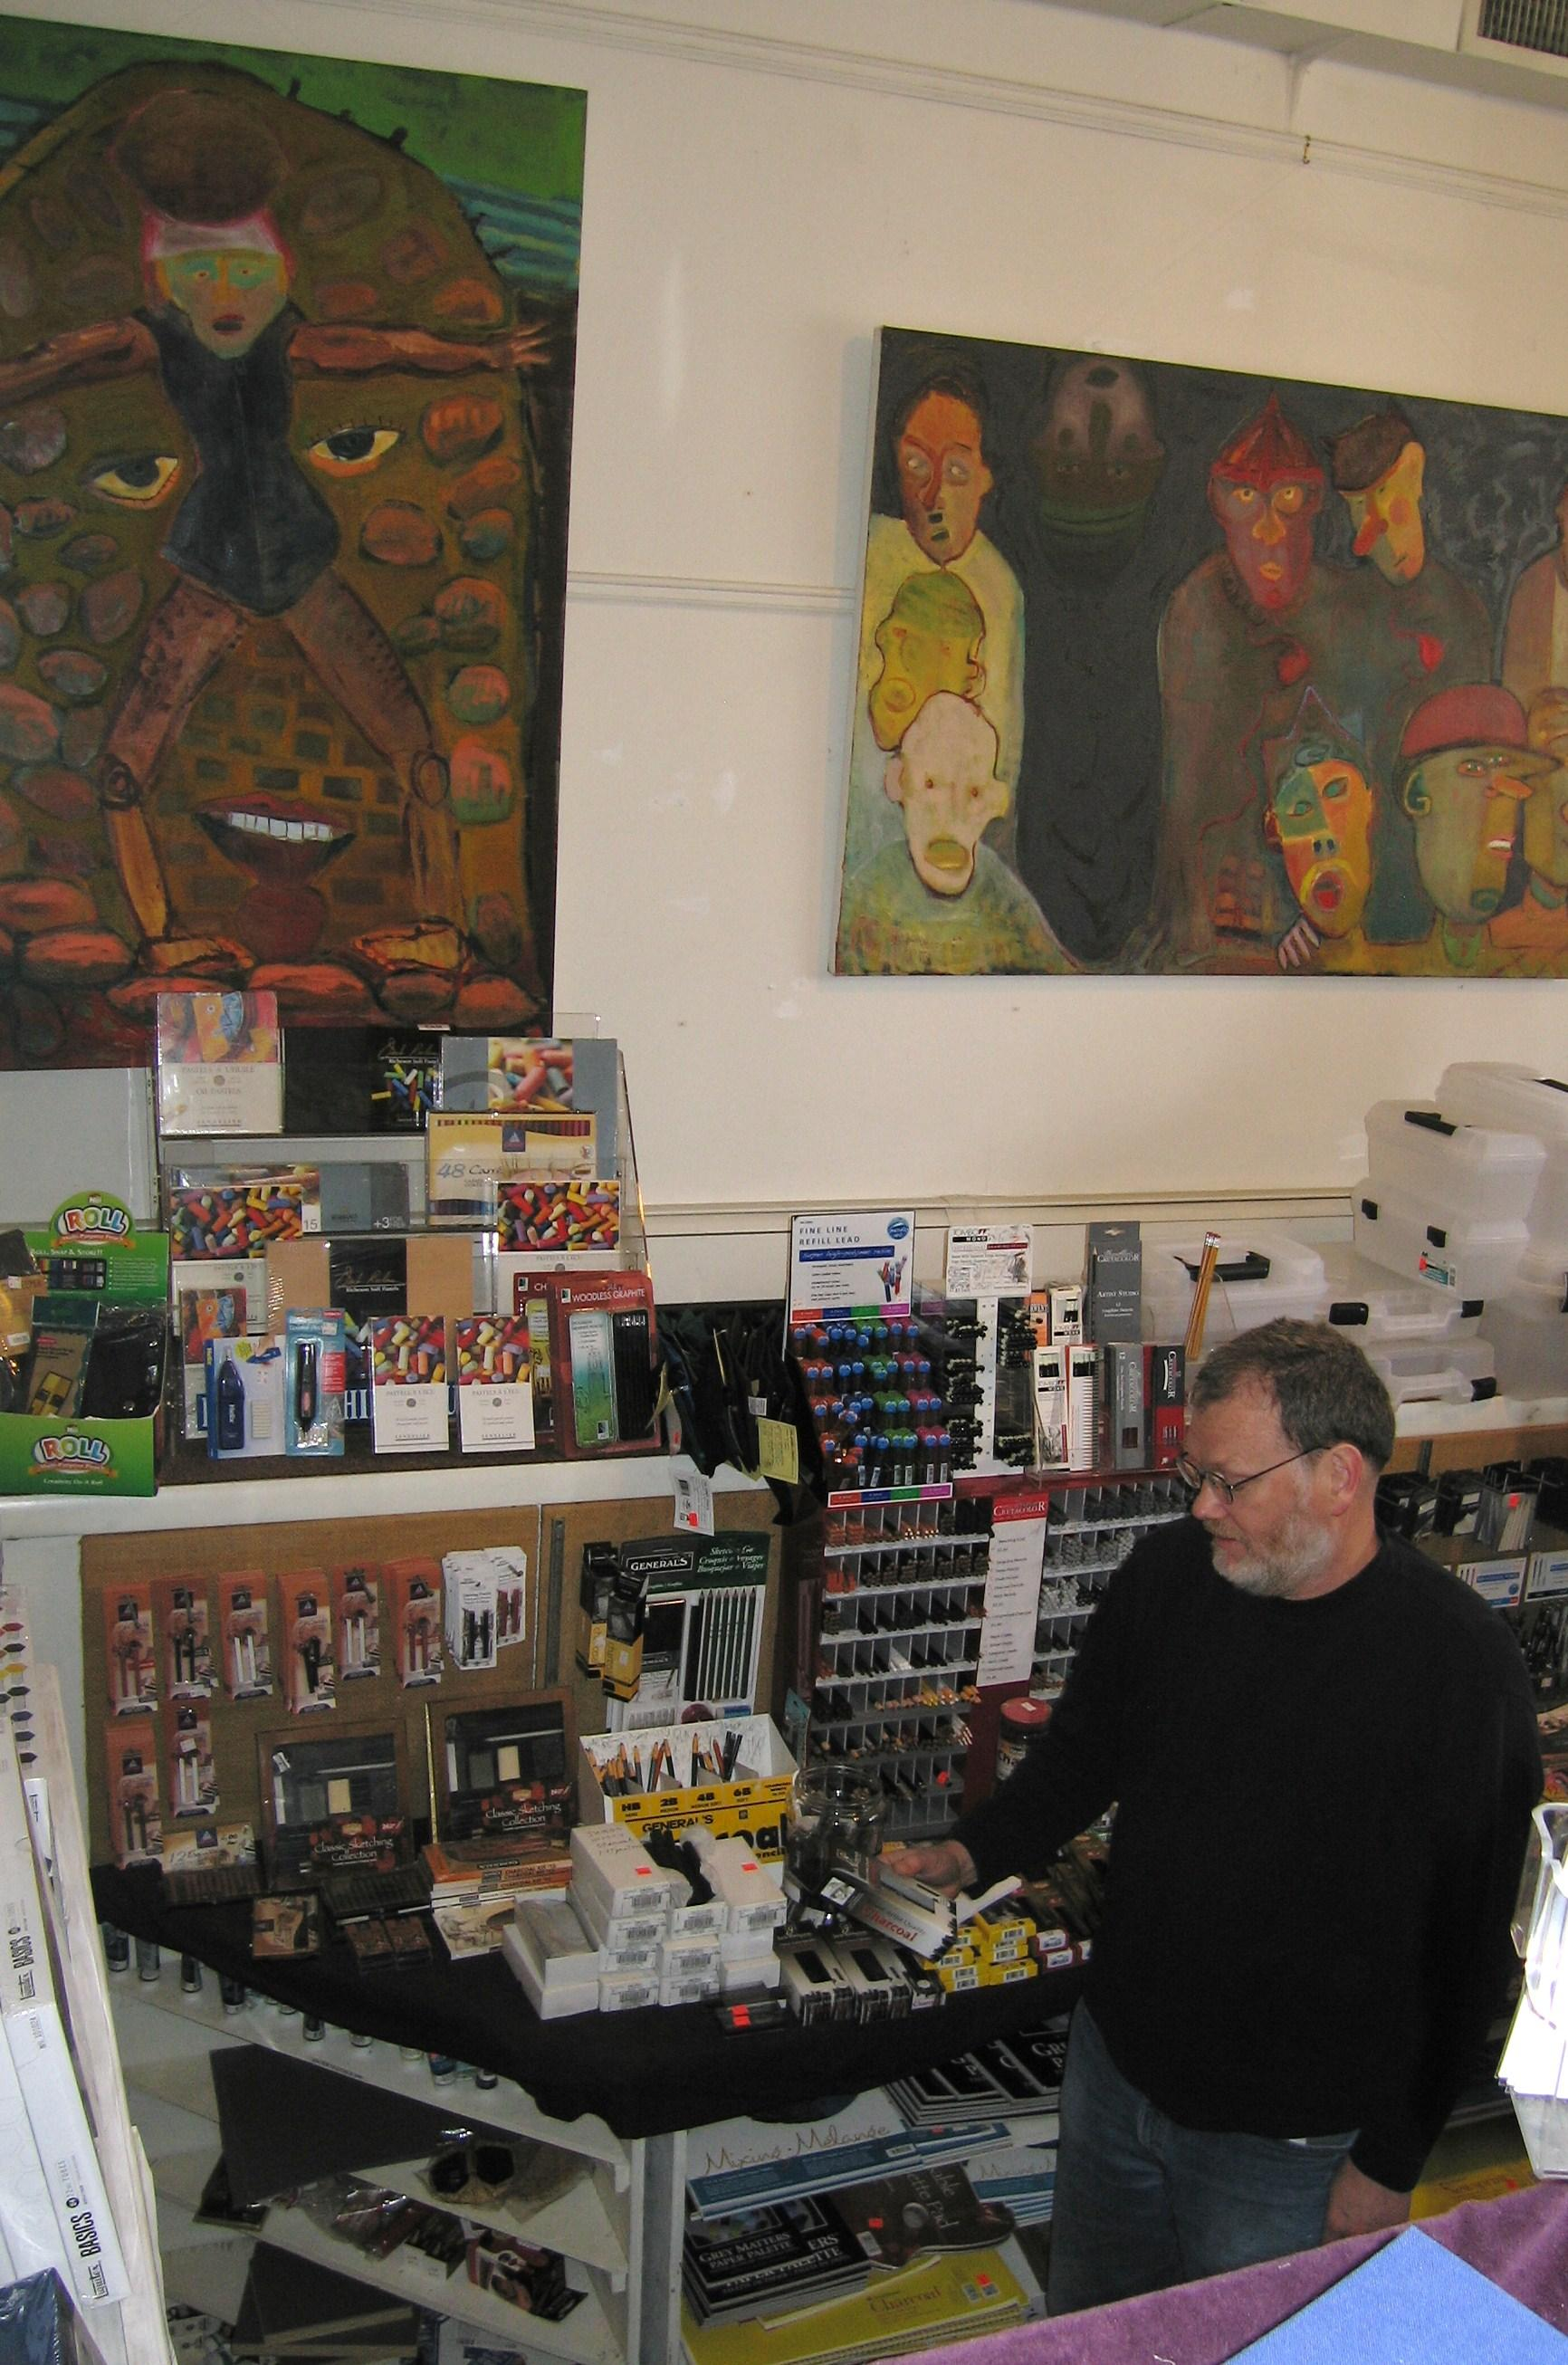 Douglas Shippee, owner of the Rhinebeck Artist's Shop, also curates an art gallery on the second floor of the Rhinebeck location.